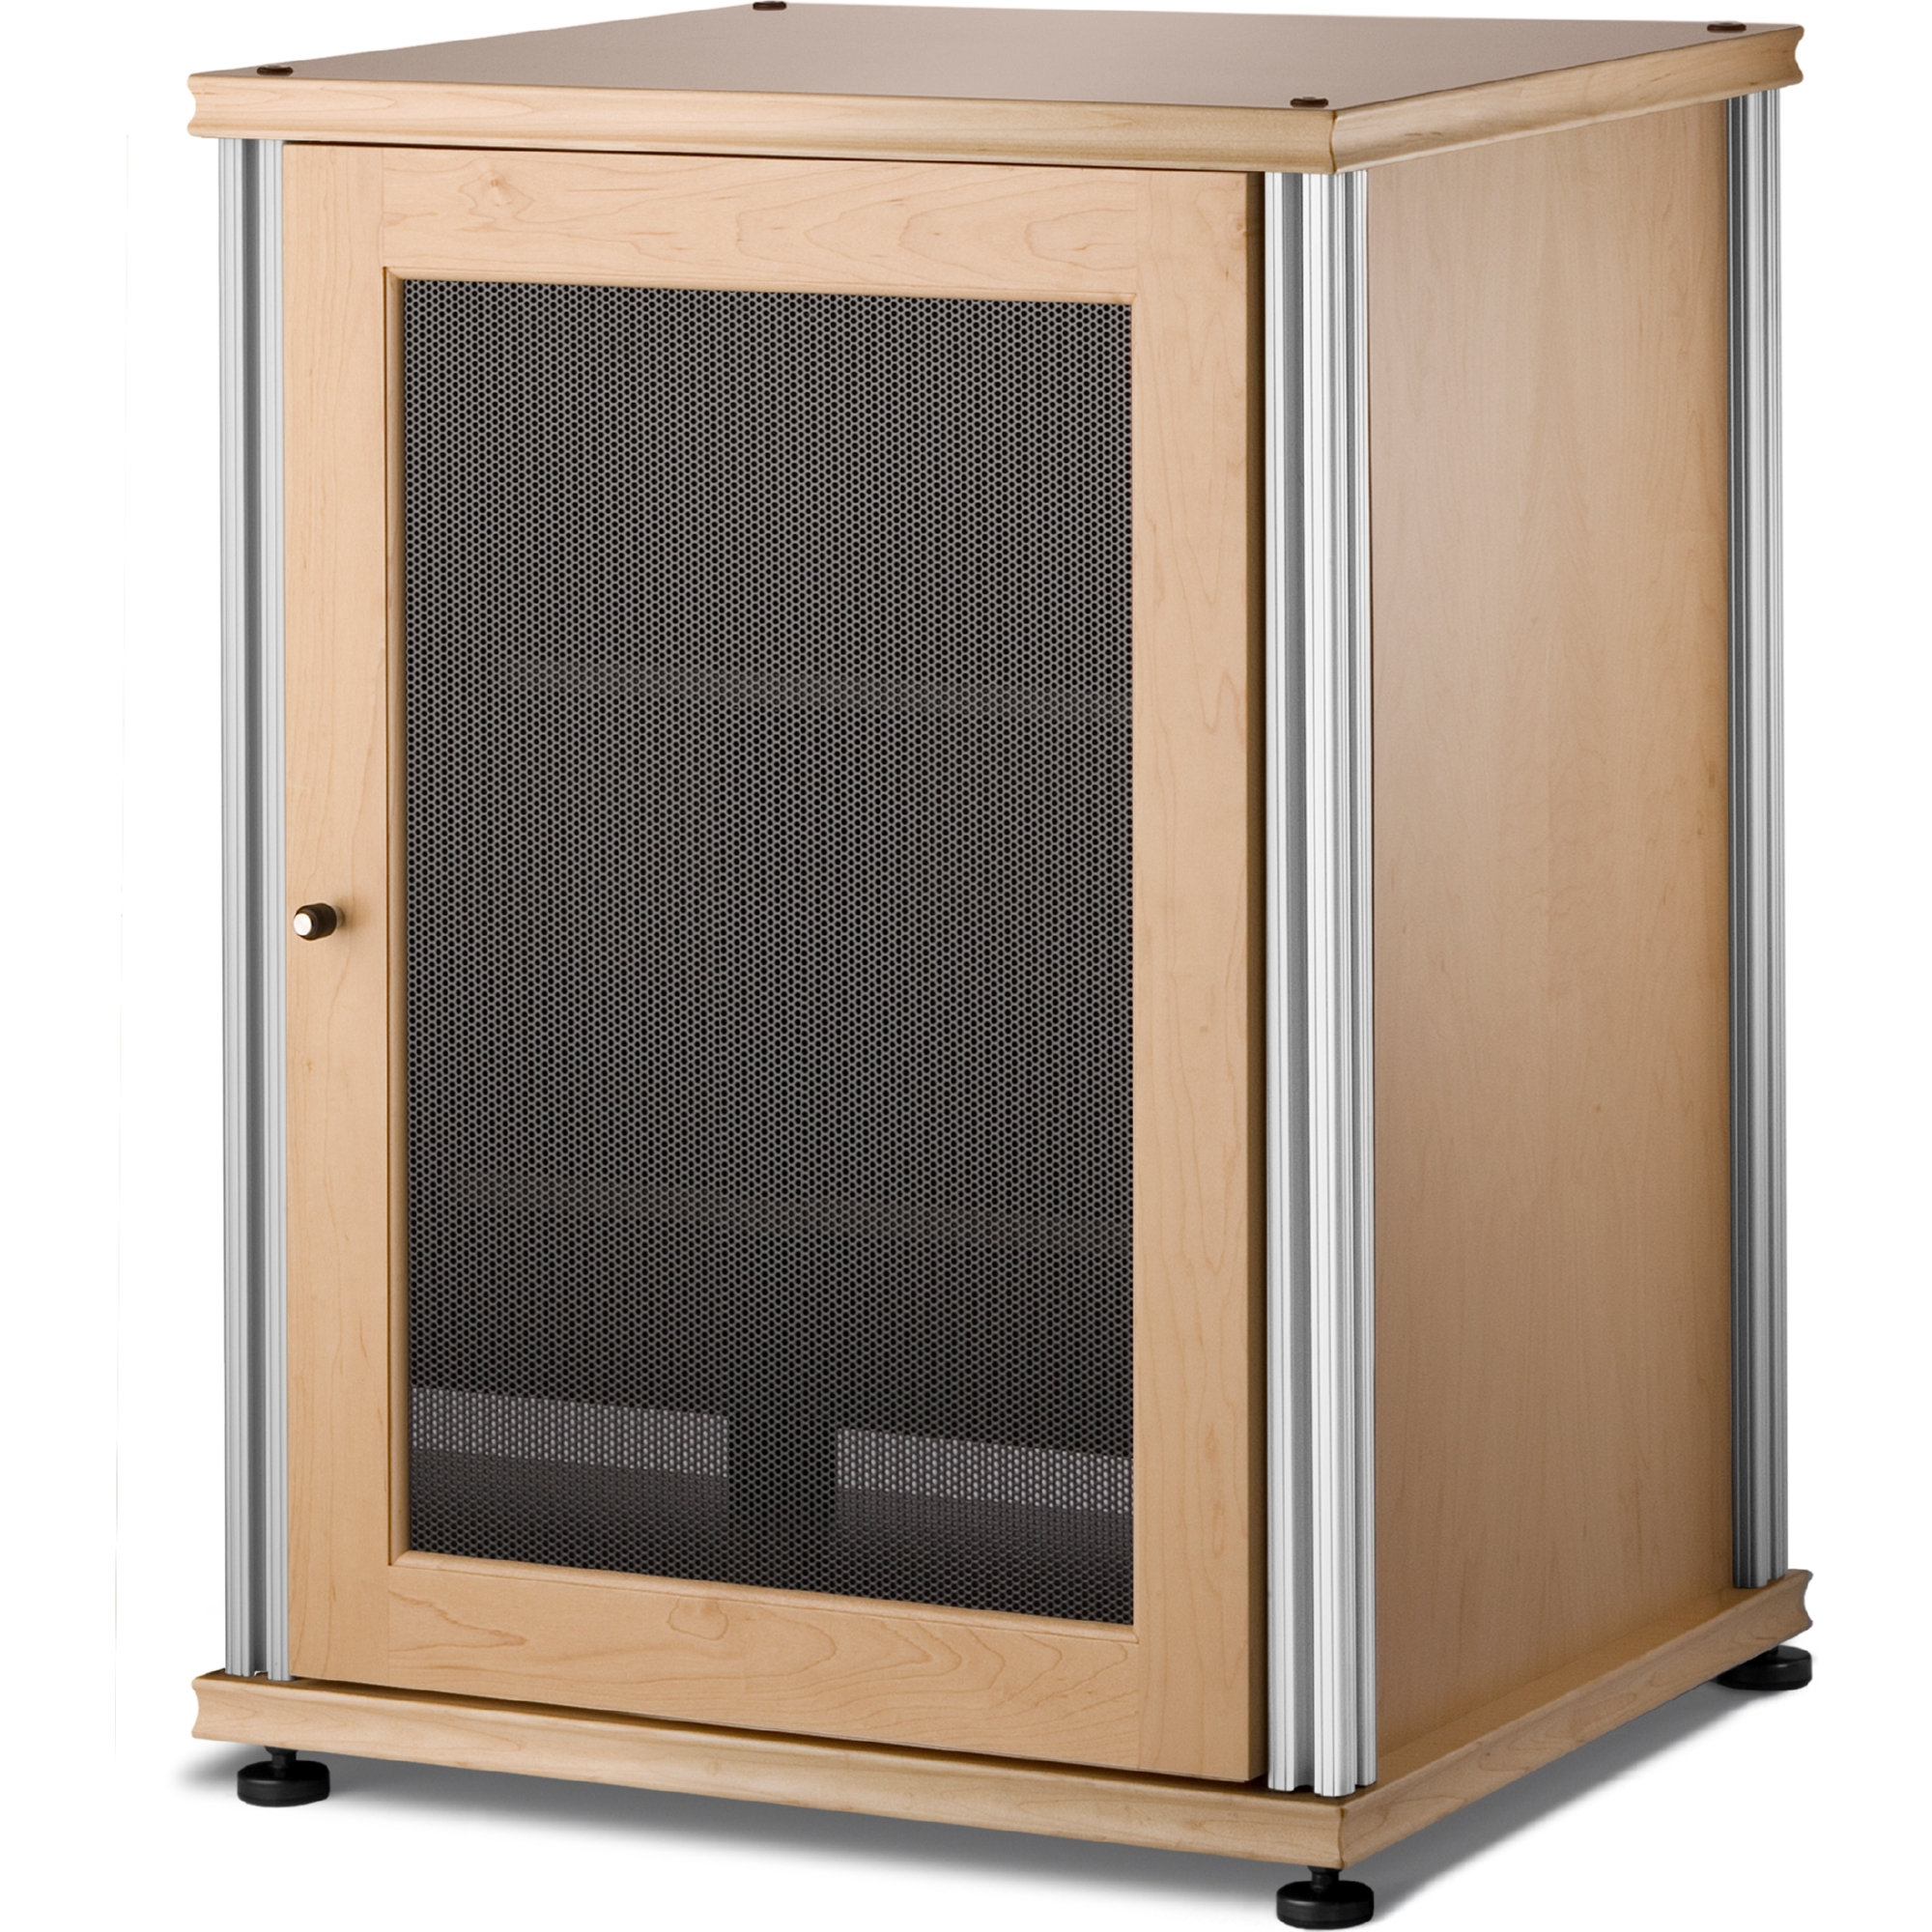 cooling av com open venting your direct for cabinetventing source closed cabinet